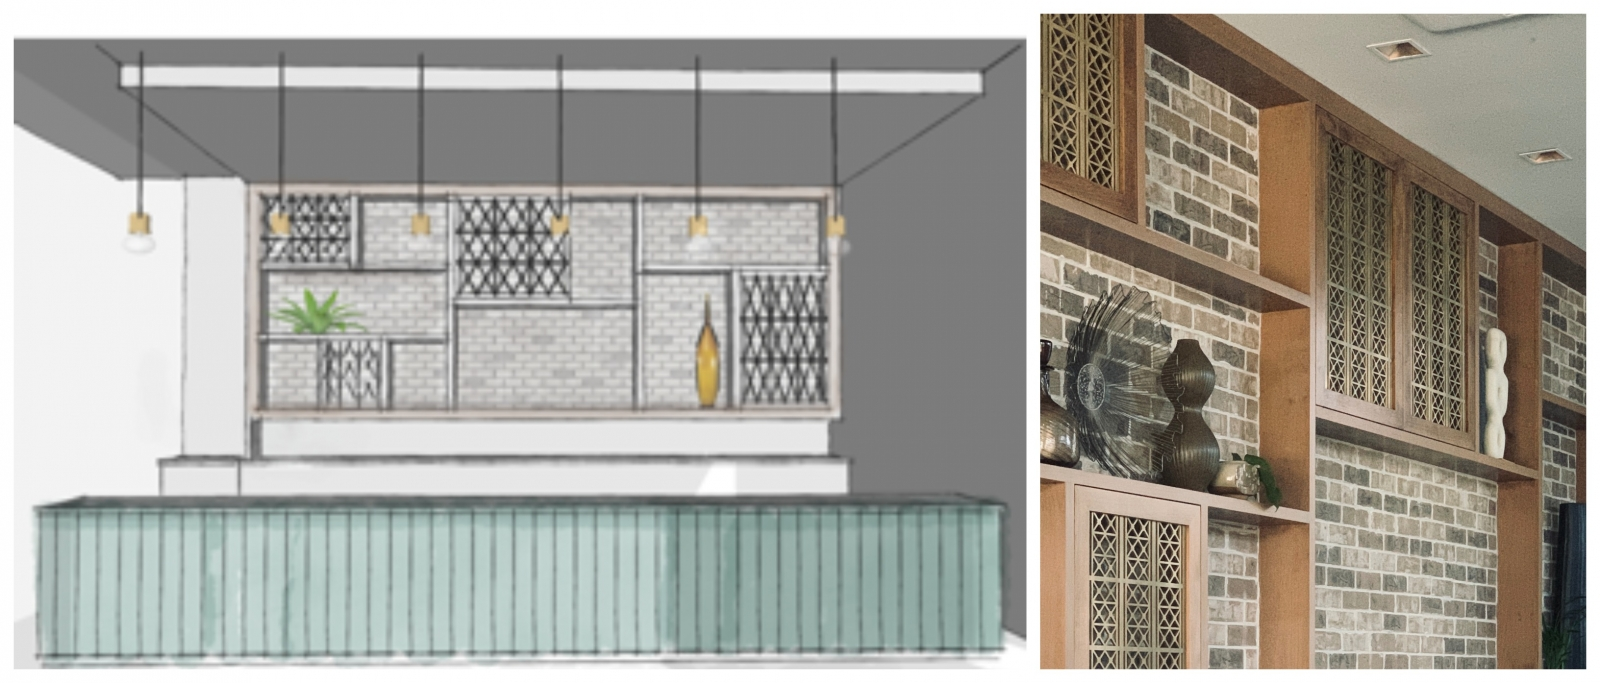 The back bar features custom built-in shelves with cabinet doors boasting a pattern found in Vietnamese architecture and is meant to draw the eye of passersby. (Images courtesy of Aura Design Company)